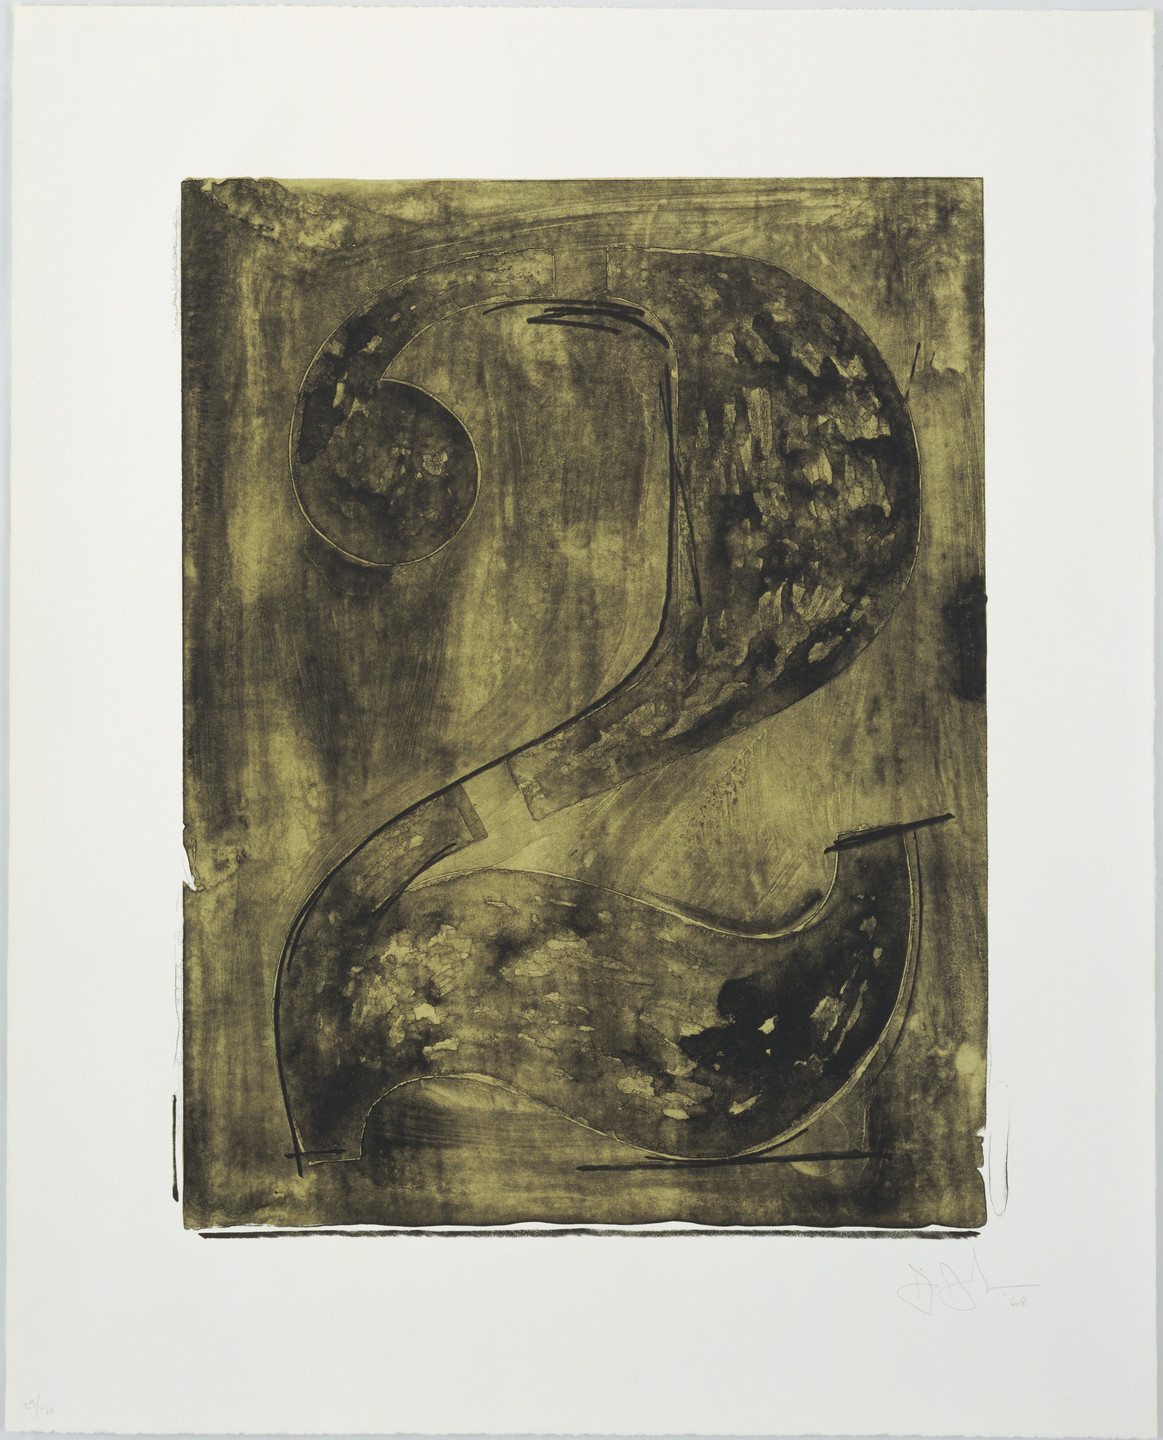 Jasper Johns. Figure 2 from Black Numeral Series. 1968